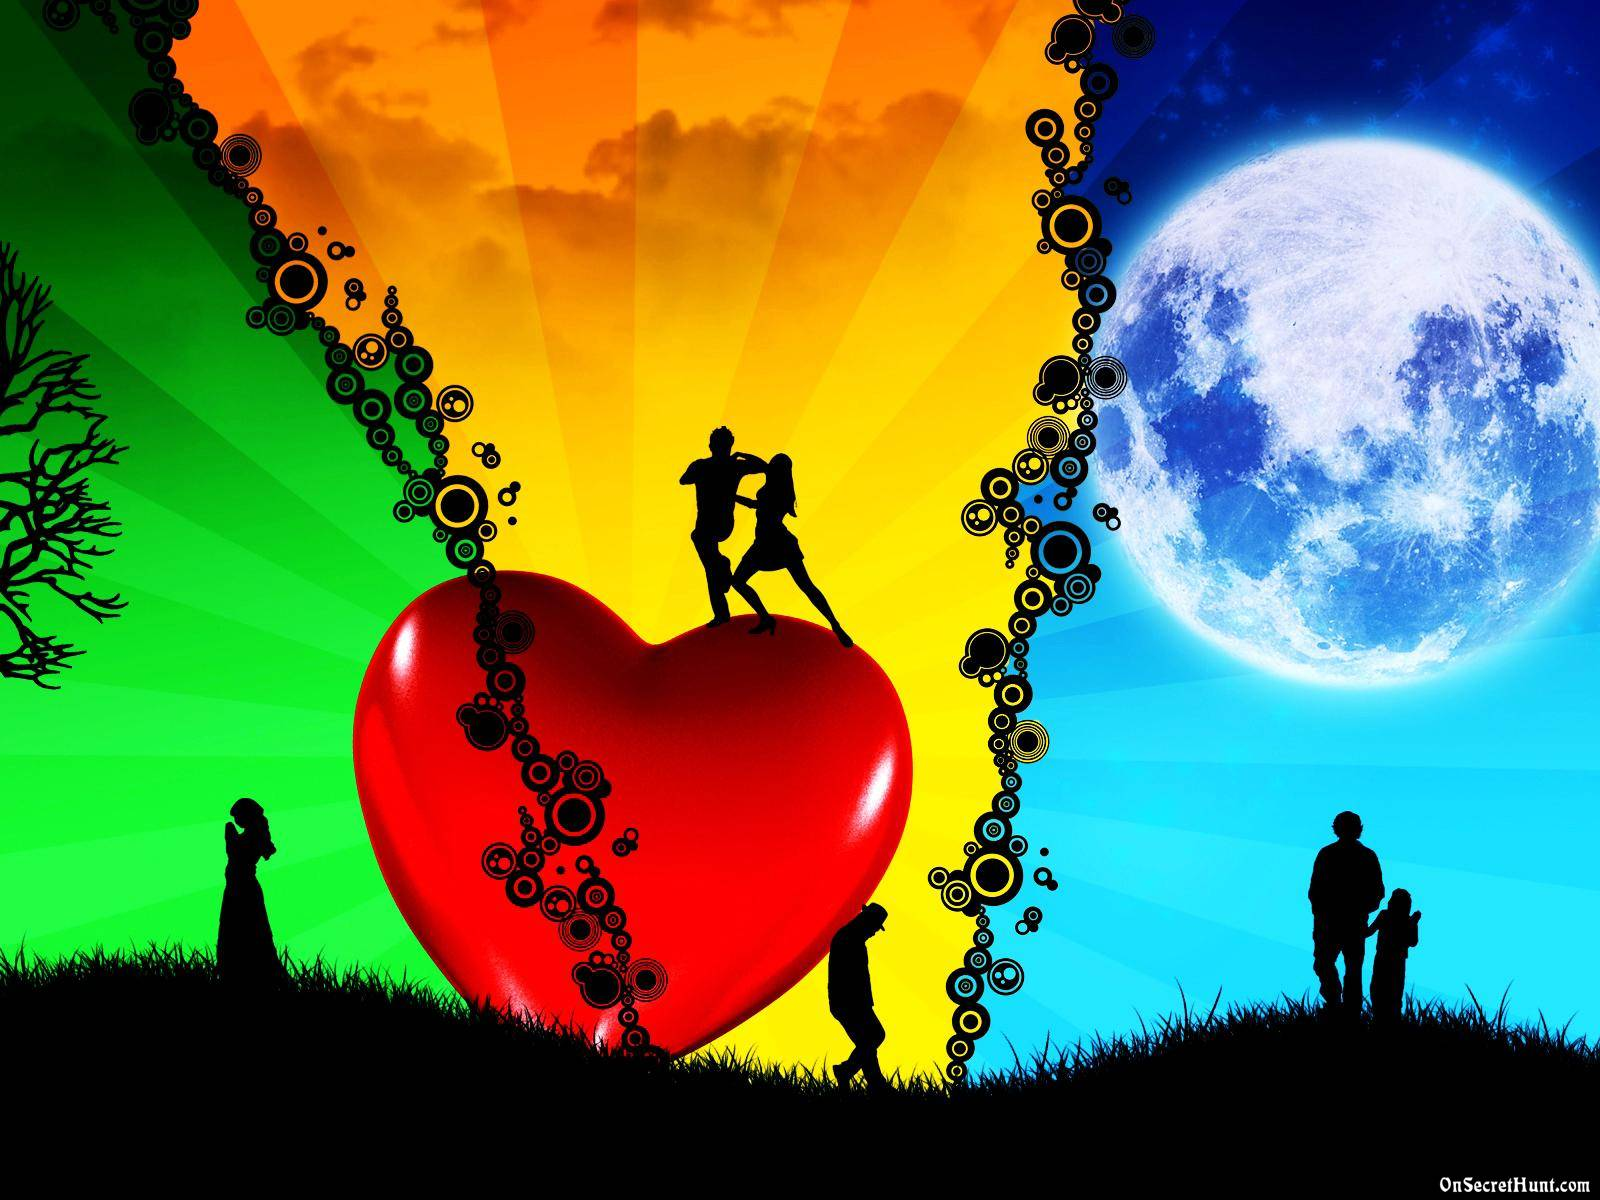 Love Wallpaper New Latest : Love Wallpapers 3D - Wallpaper cave